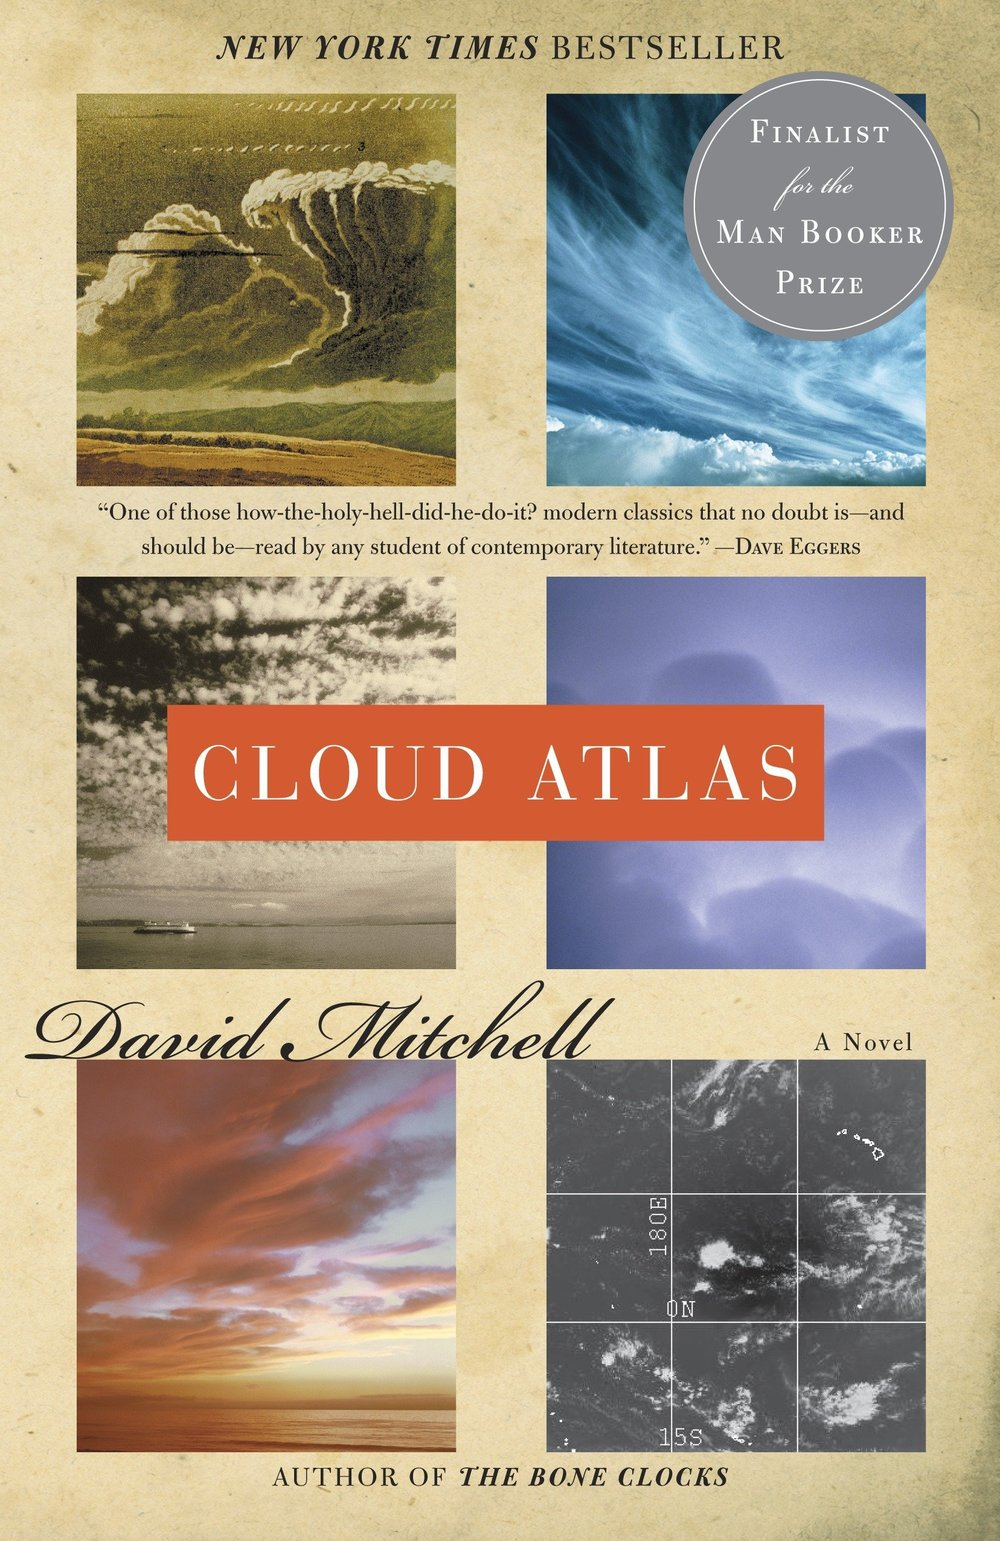 cloud atlas by david mitchell.jpg